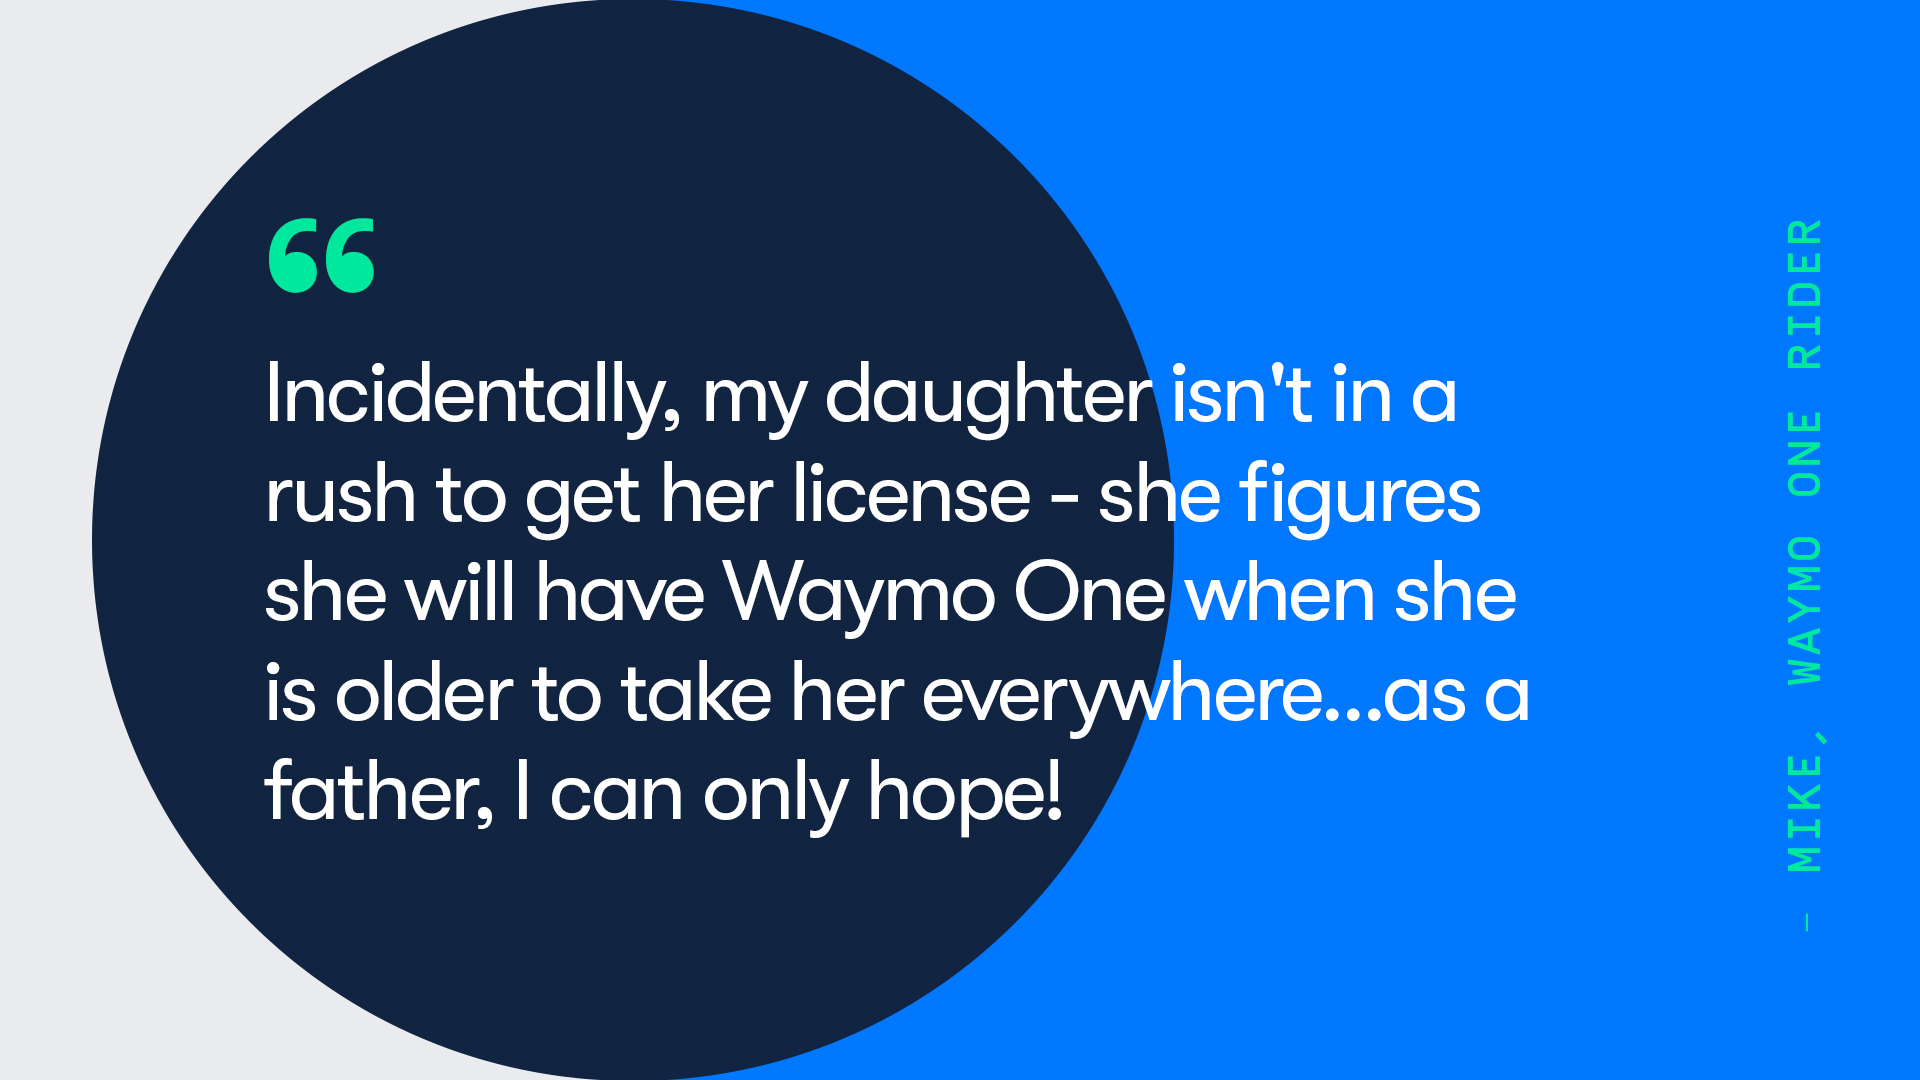 Thumbnail: Quote Incidentally, my daughter isn't in a rush to get her license- she figures she will have Waymo One when she is older to take her everywhere...as a father, I can only hope!